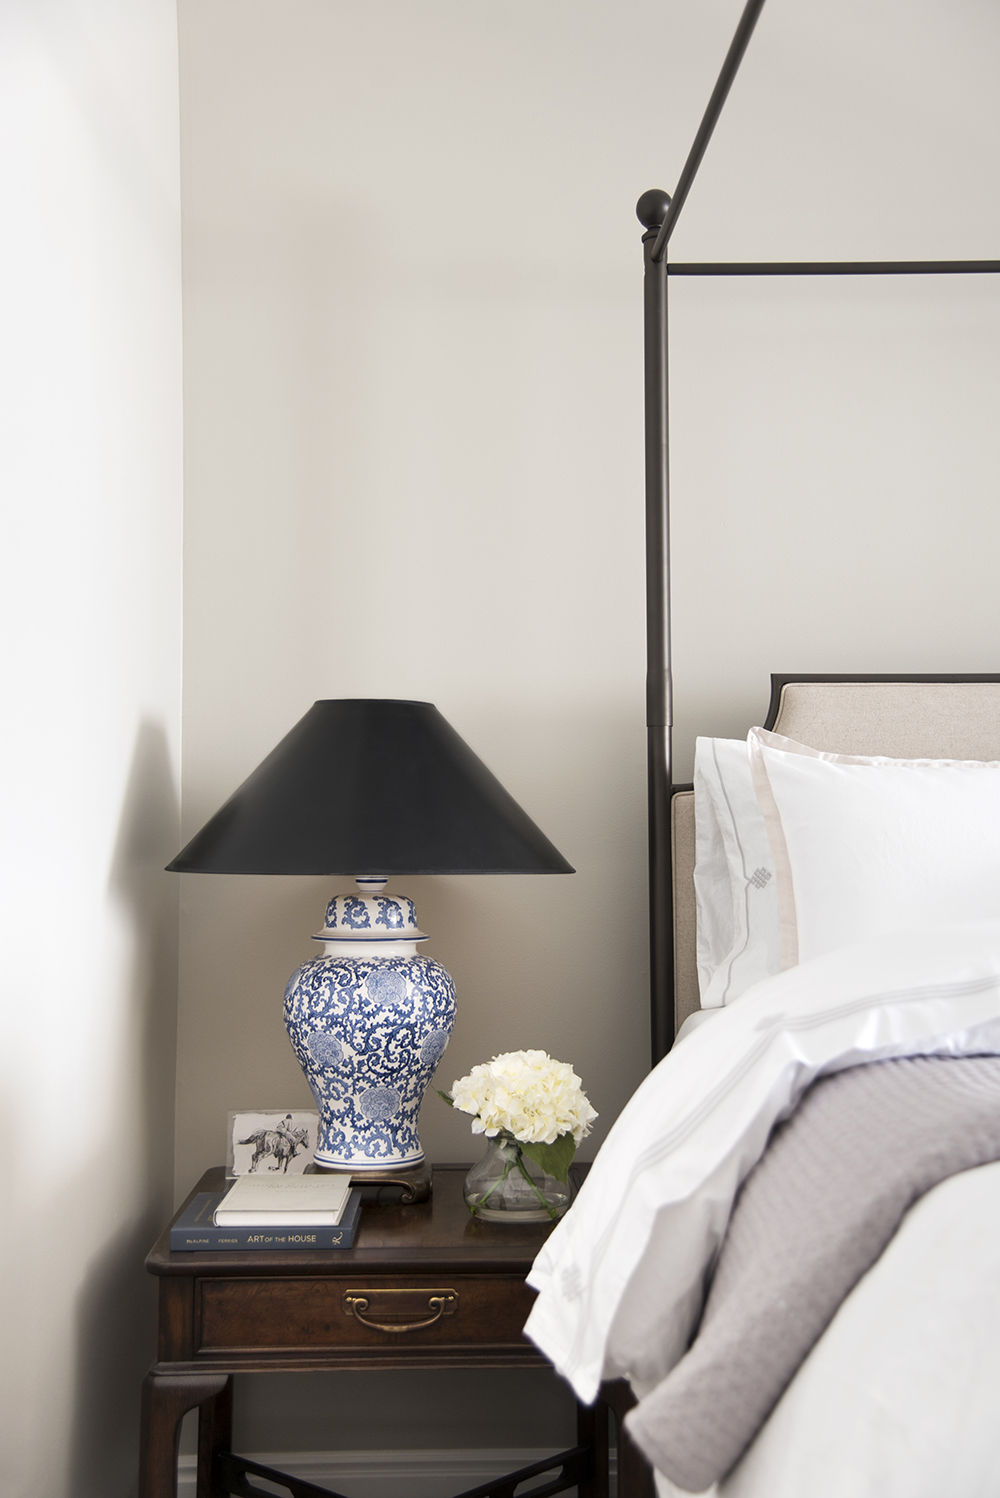 Mini Guest Room Makeover for Holiday Visitors - roomfortuesday.com